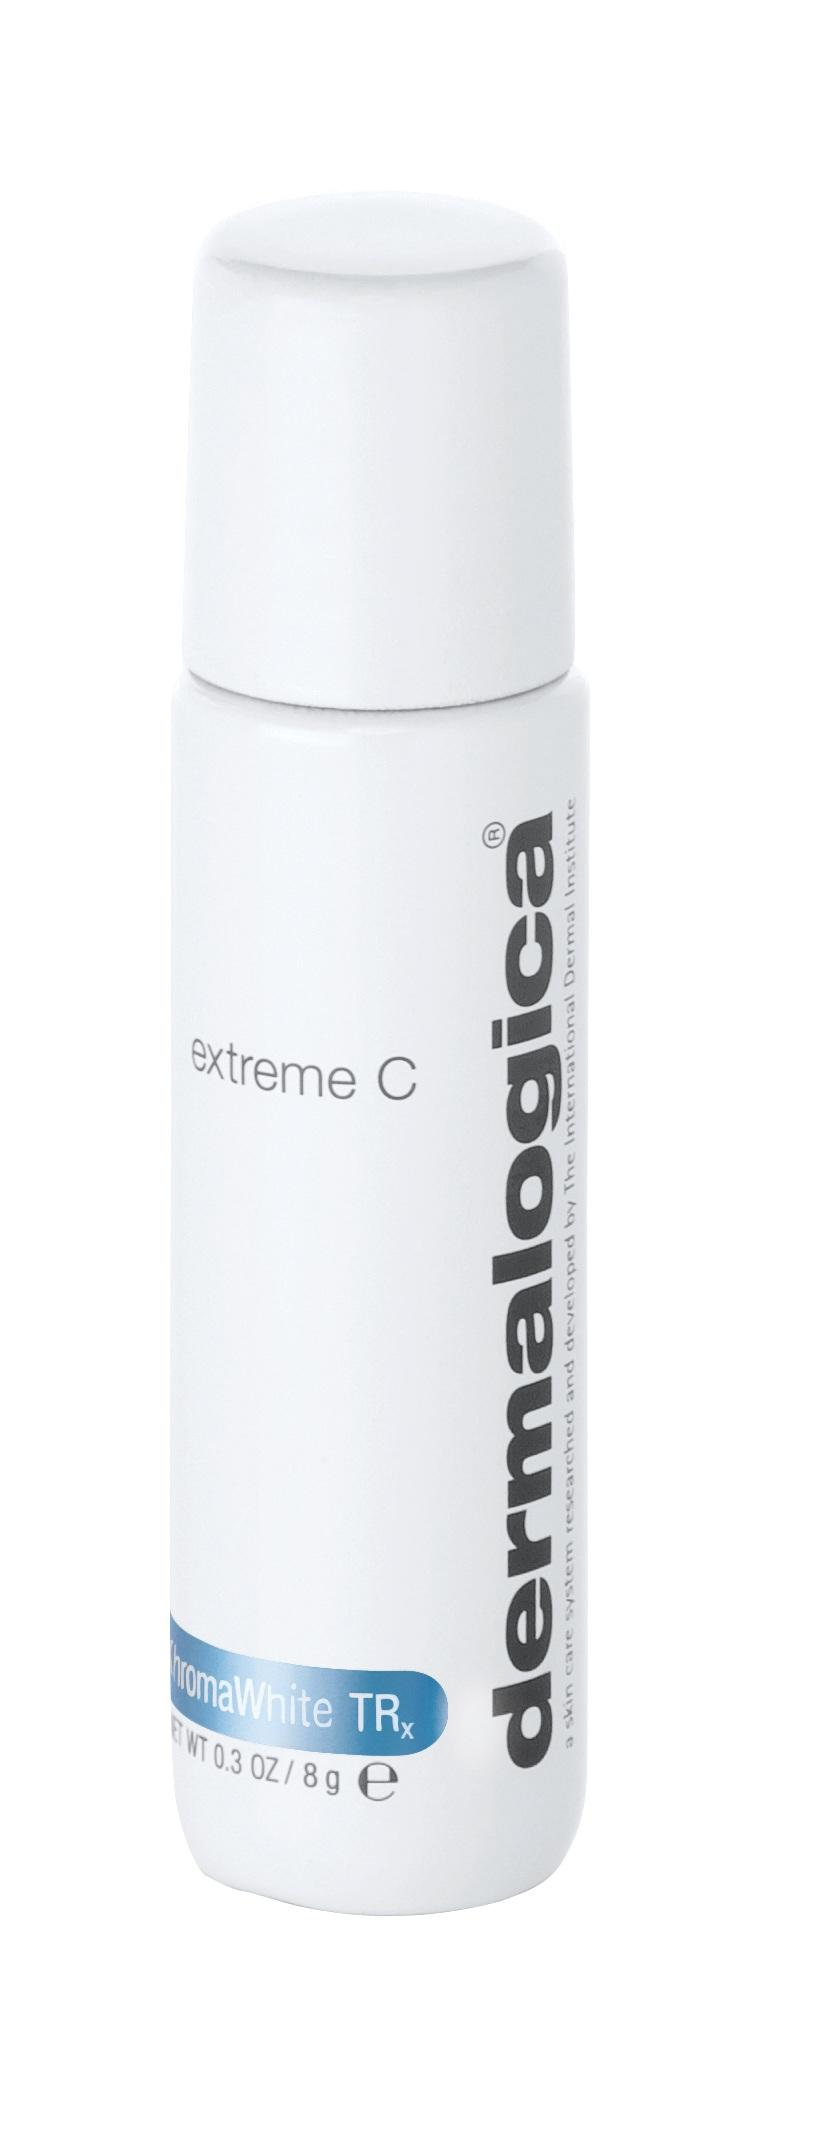 dermalogica extreme c how to use